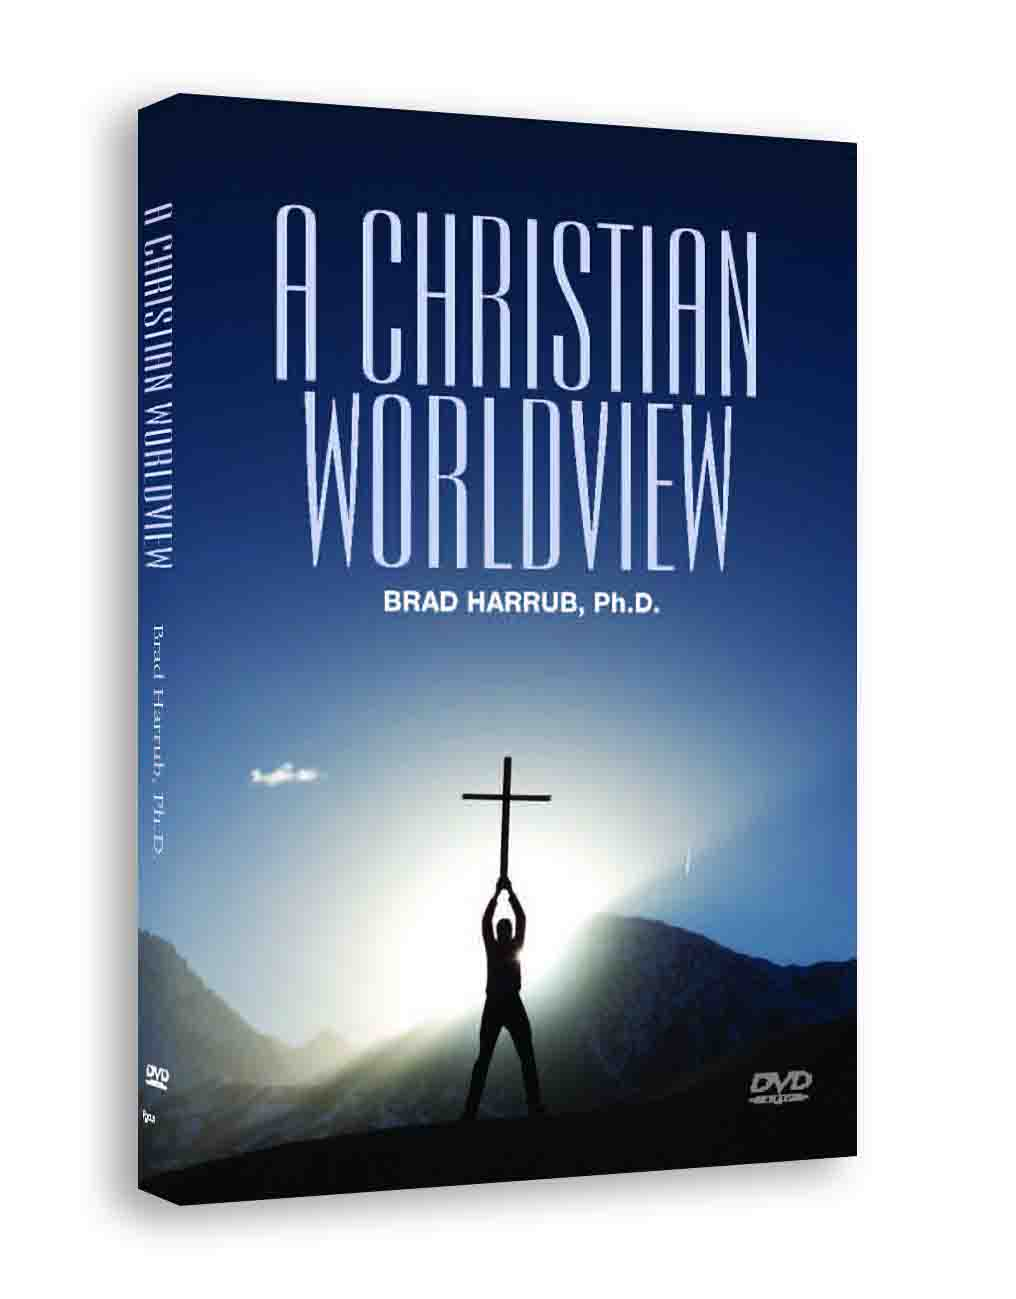 """a christians worldview Biblical worldview essay uploaded by  as a christian i would say that the base of the pyramid is formed by our worldview and faith about the nature of our values, knowledge, and the world in general one value that we must not forget would be that of """"service"""" which is important not only in this profession but to christians as well."""